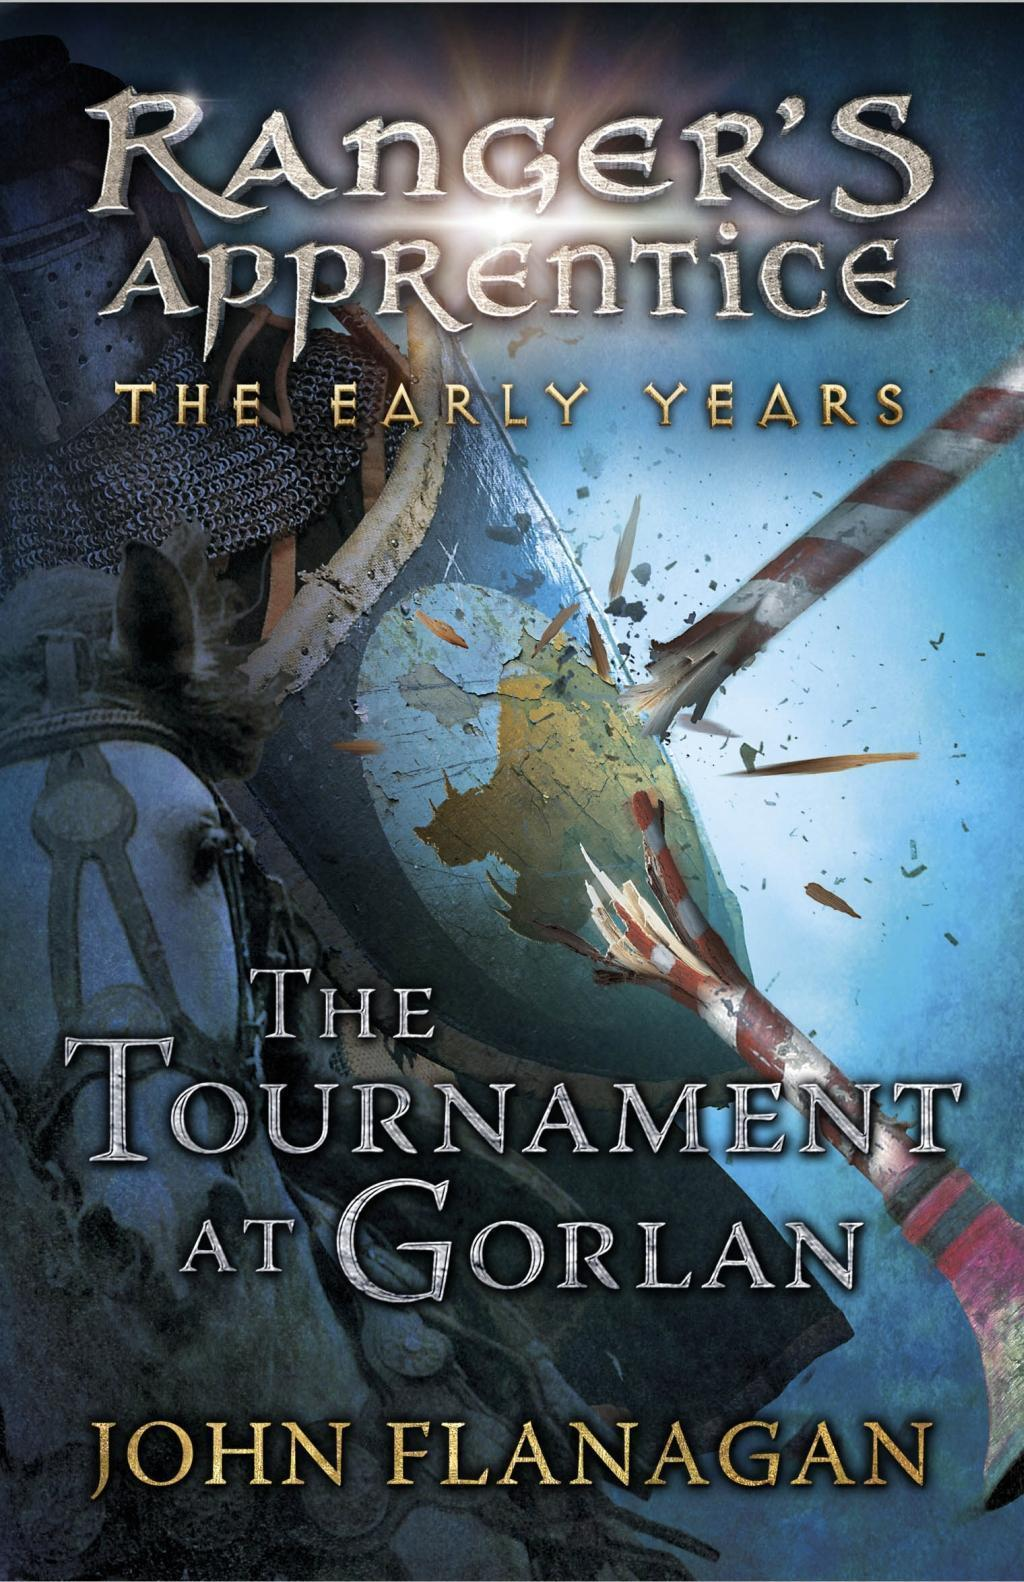 The Tournament at Gorlan (Ranger's Apprentice: The Early Years Book 1)